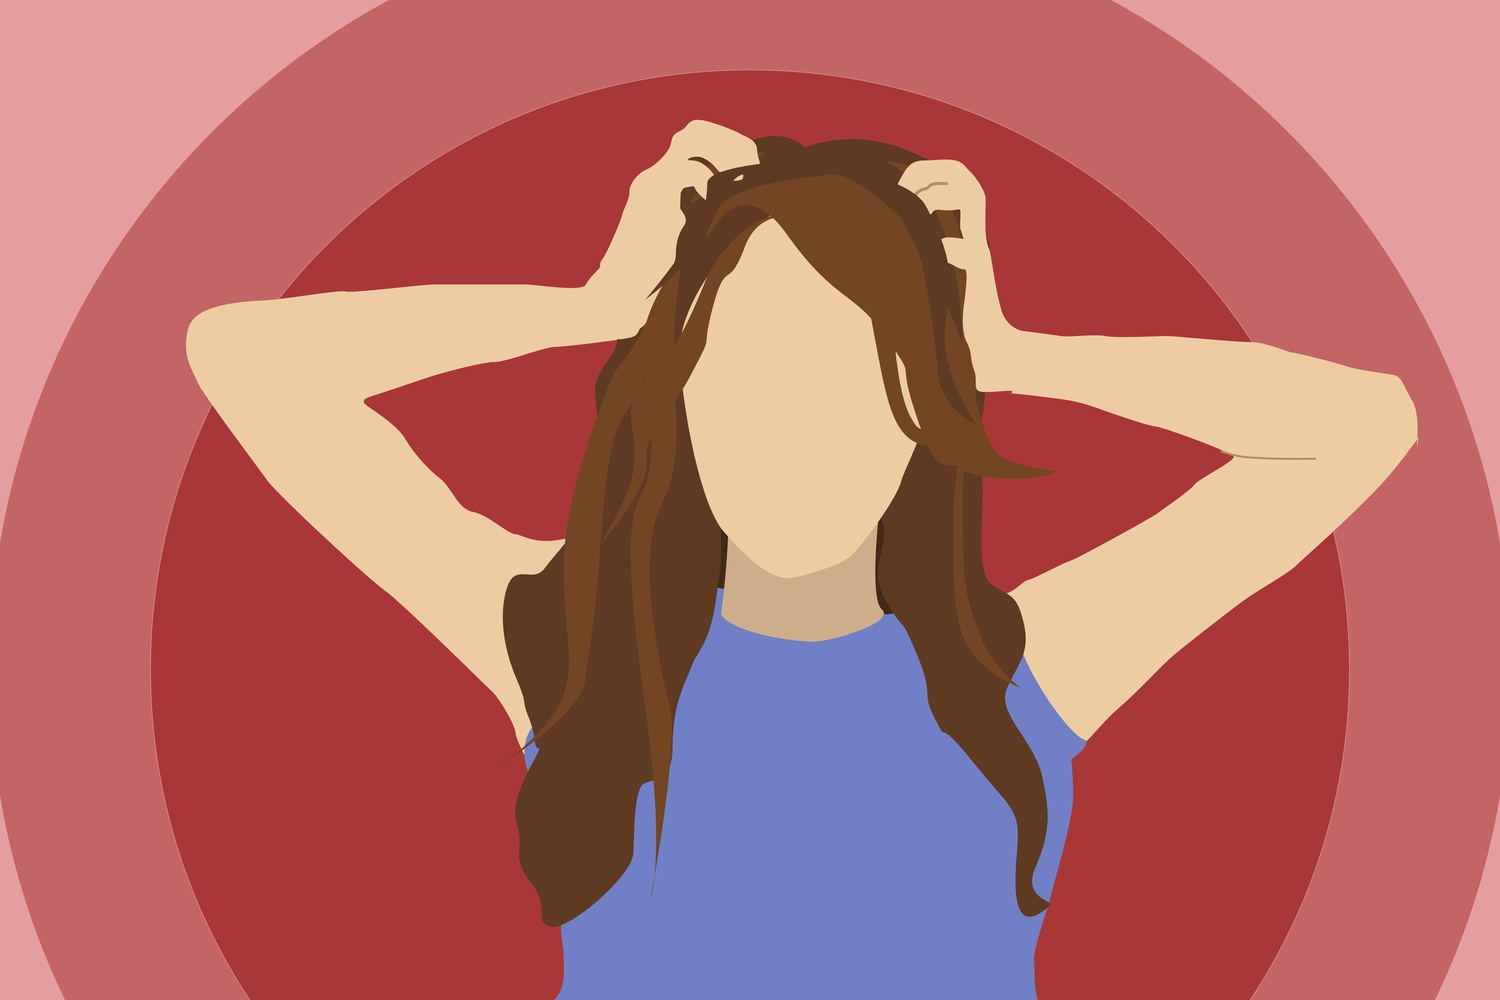 An international team led by Harvard researchers have identified the mechanism through which chronic stress may lead to hair loss.